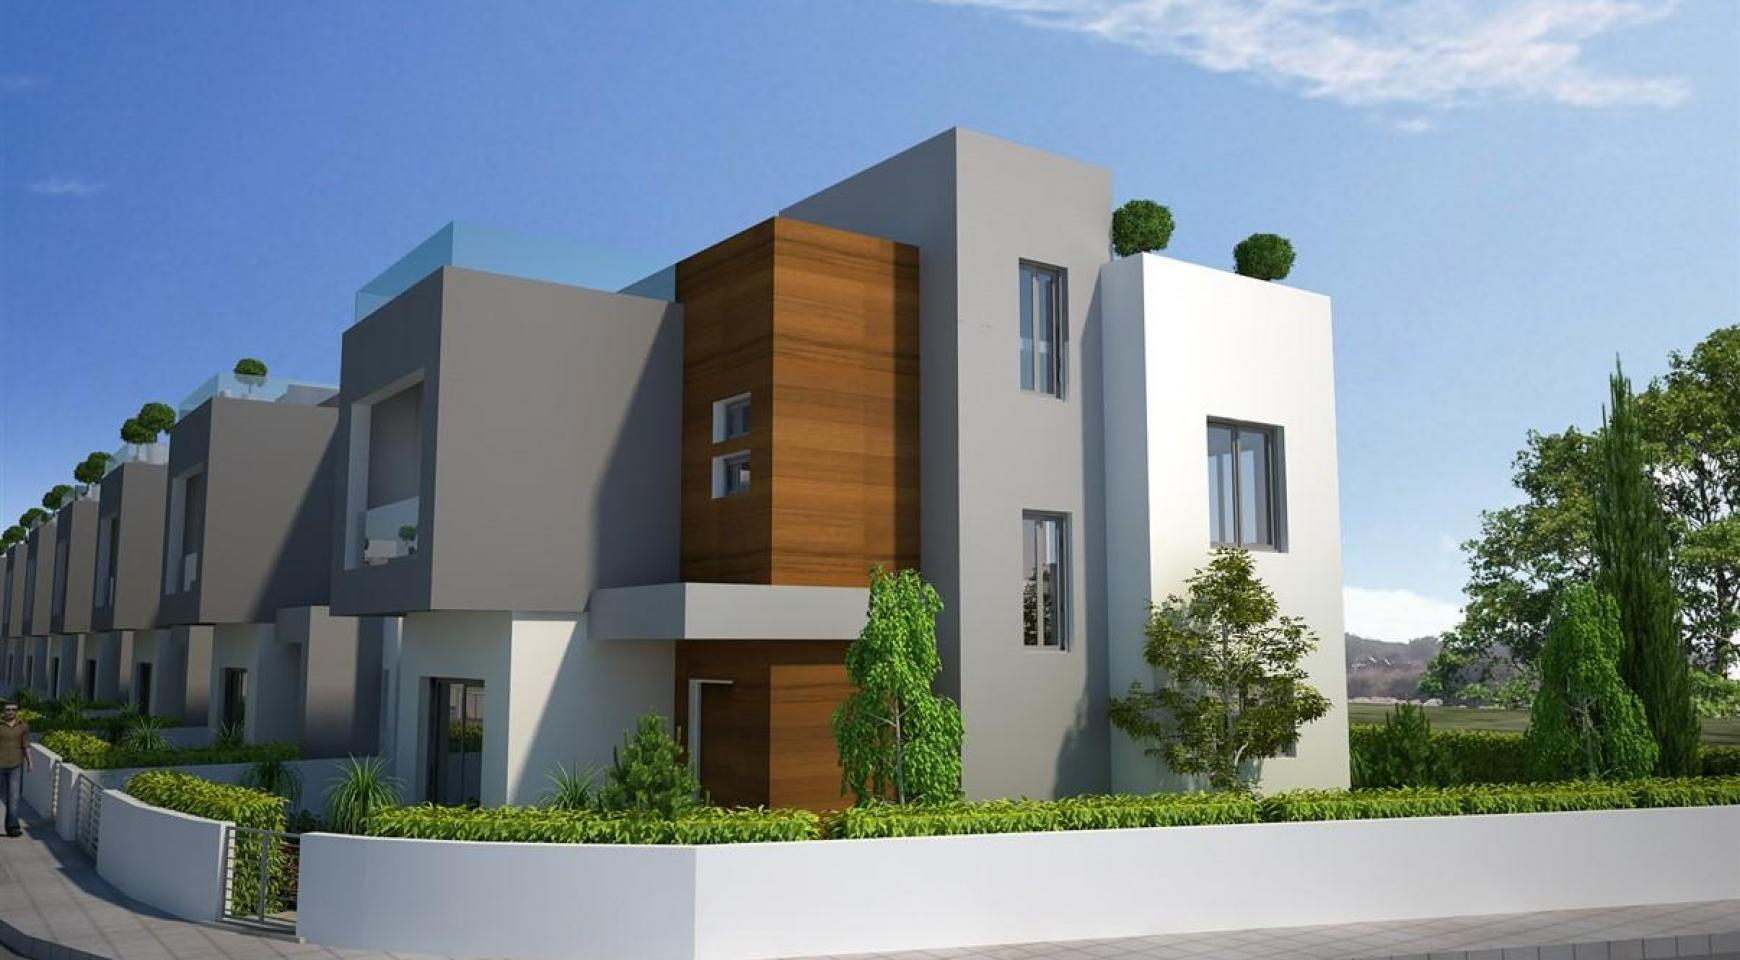 3 Bedroom Villa in a New Project - 39